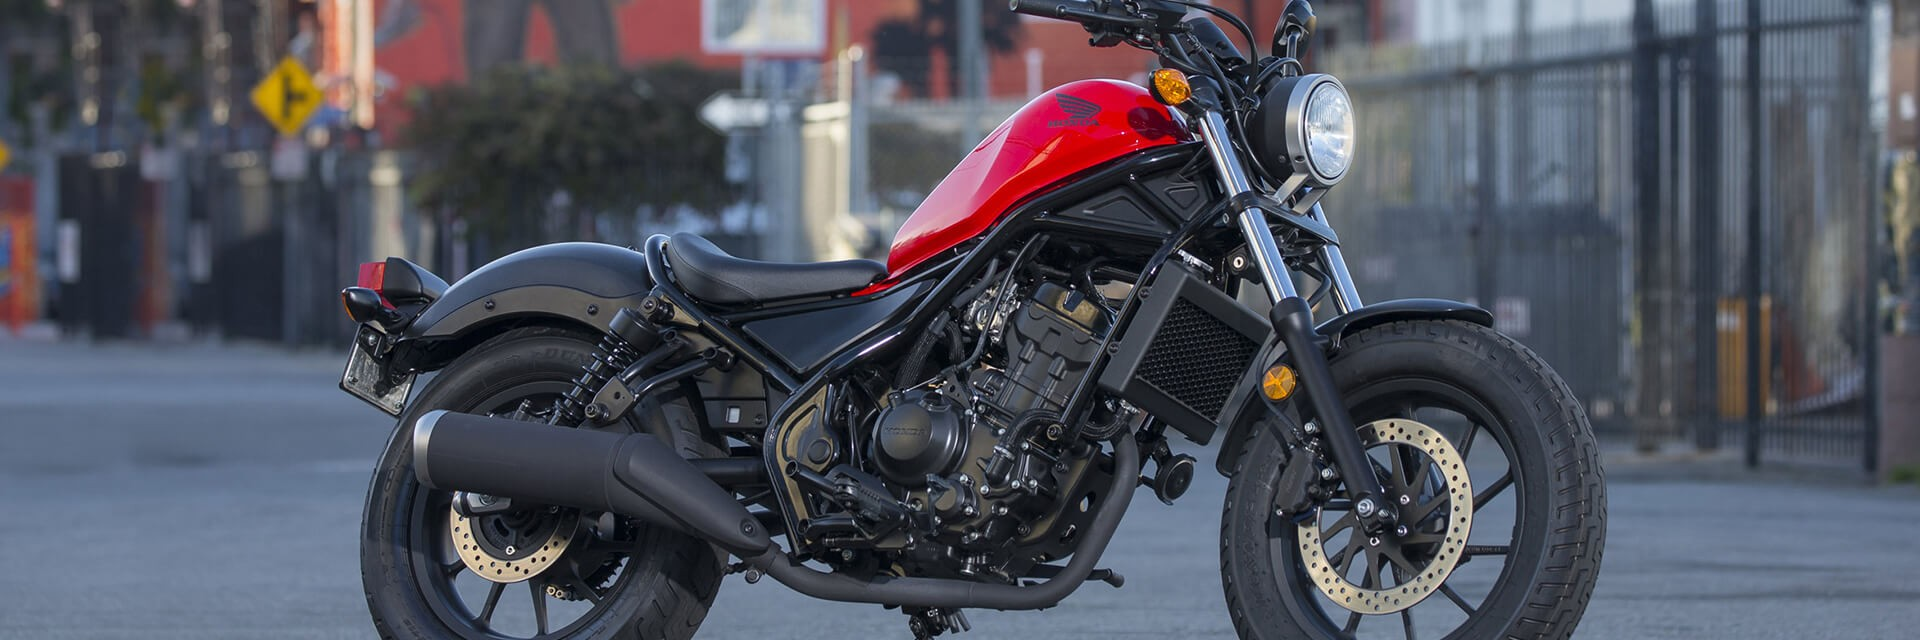 Shop Motorcycles At Honda Of Tupelo